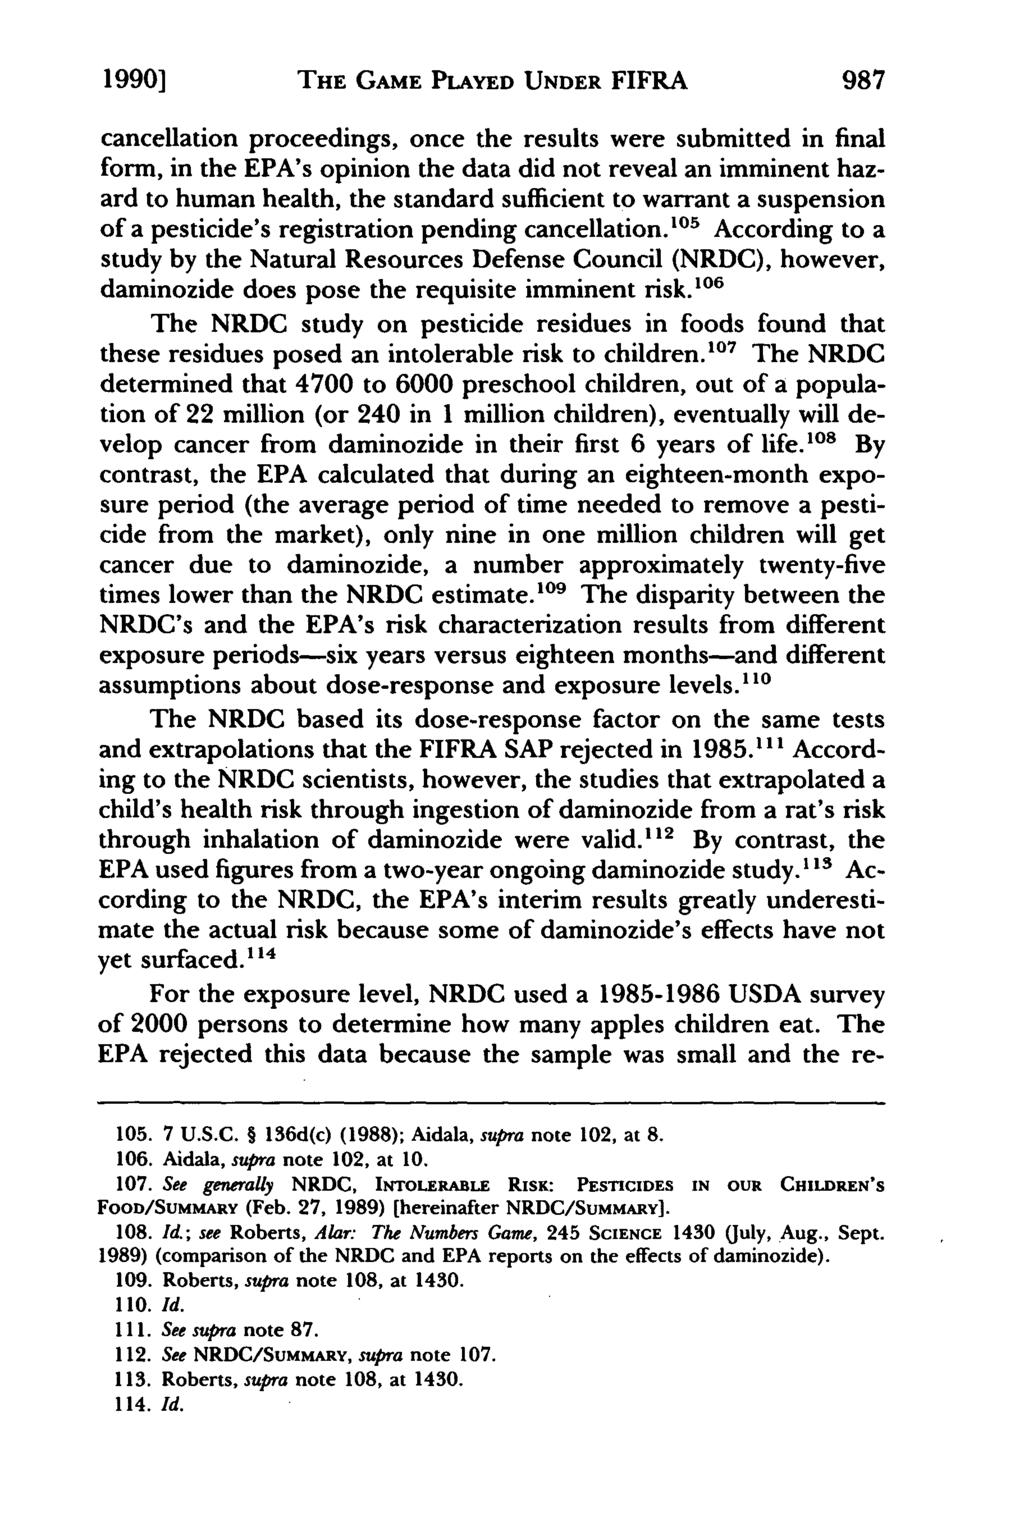 1990] THE GAME PLAYED UNDER FIFRA 987 cancellation proceedings, once the results were submitted in final form, in the EPA's opinion the data did not reveal an imminent hazard to human health, the